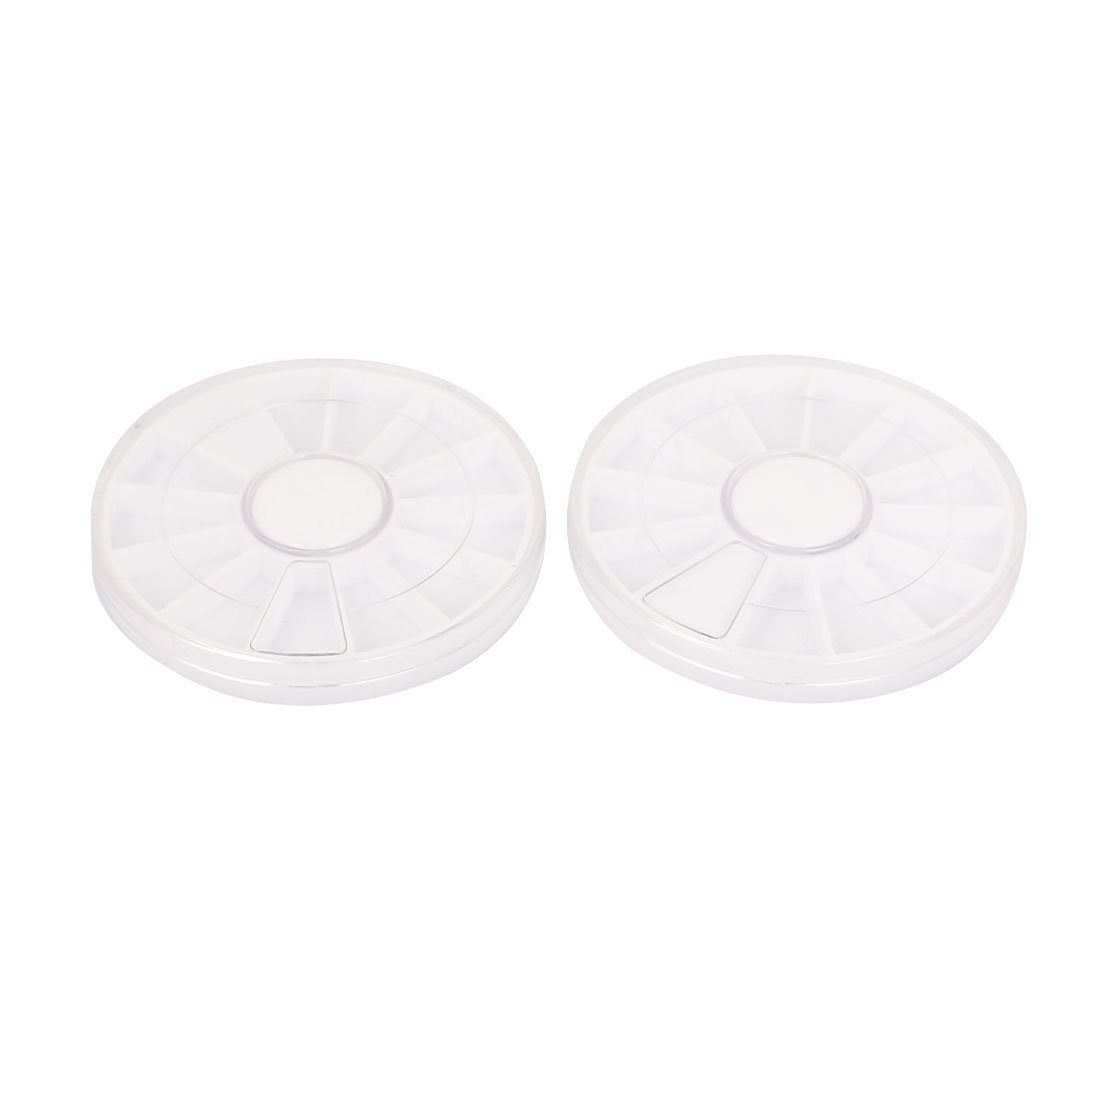 Aexit Plastic Round Tool Organizers Rotatable 12 Components Storage Box White Tool Boxes Clear 2pcs